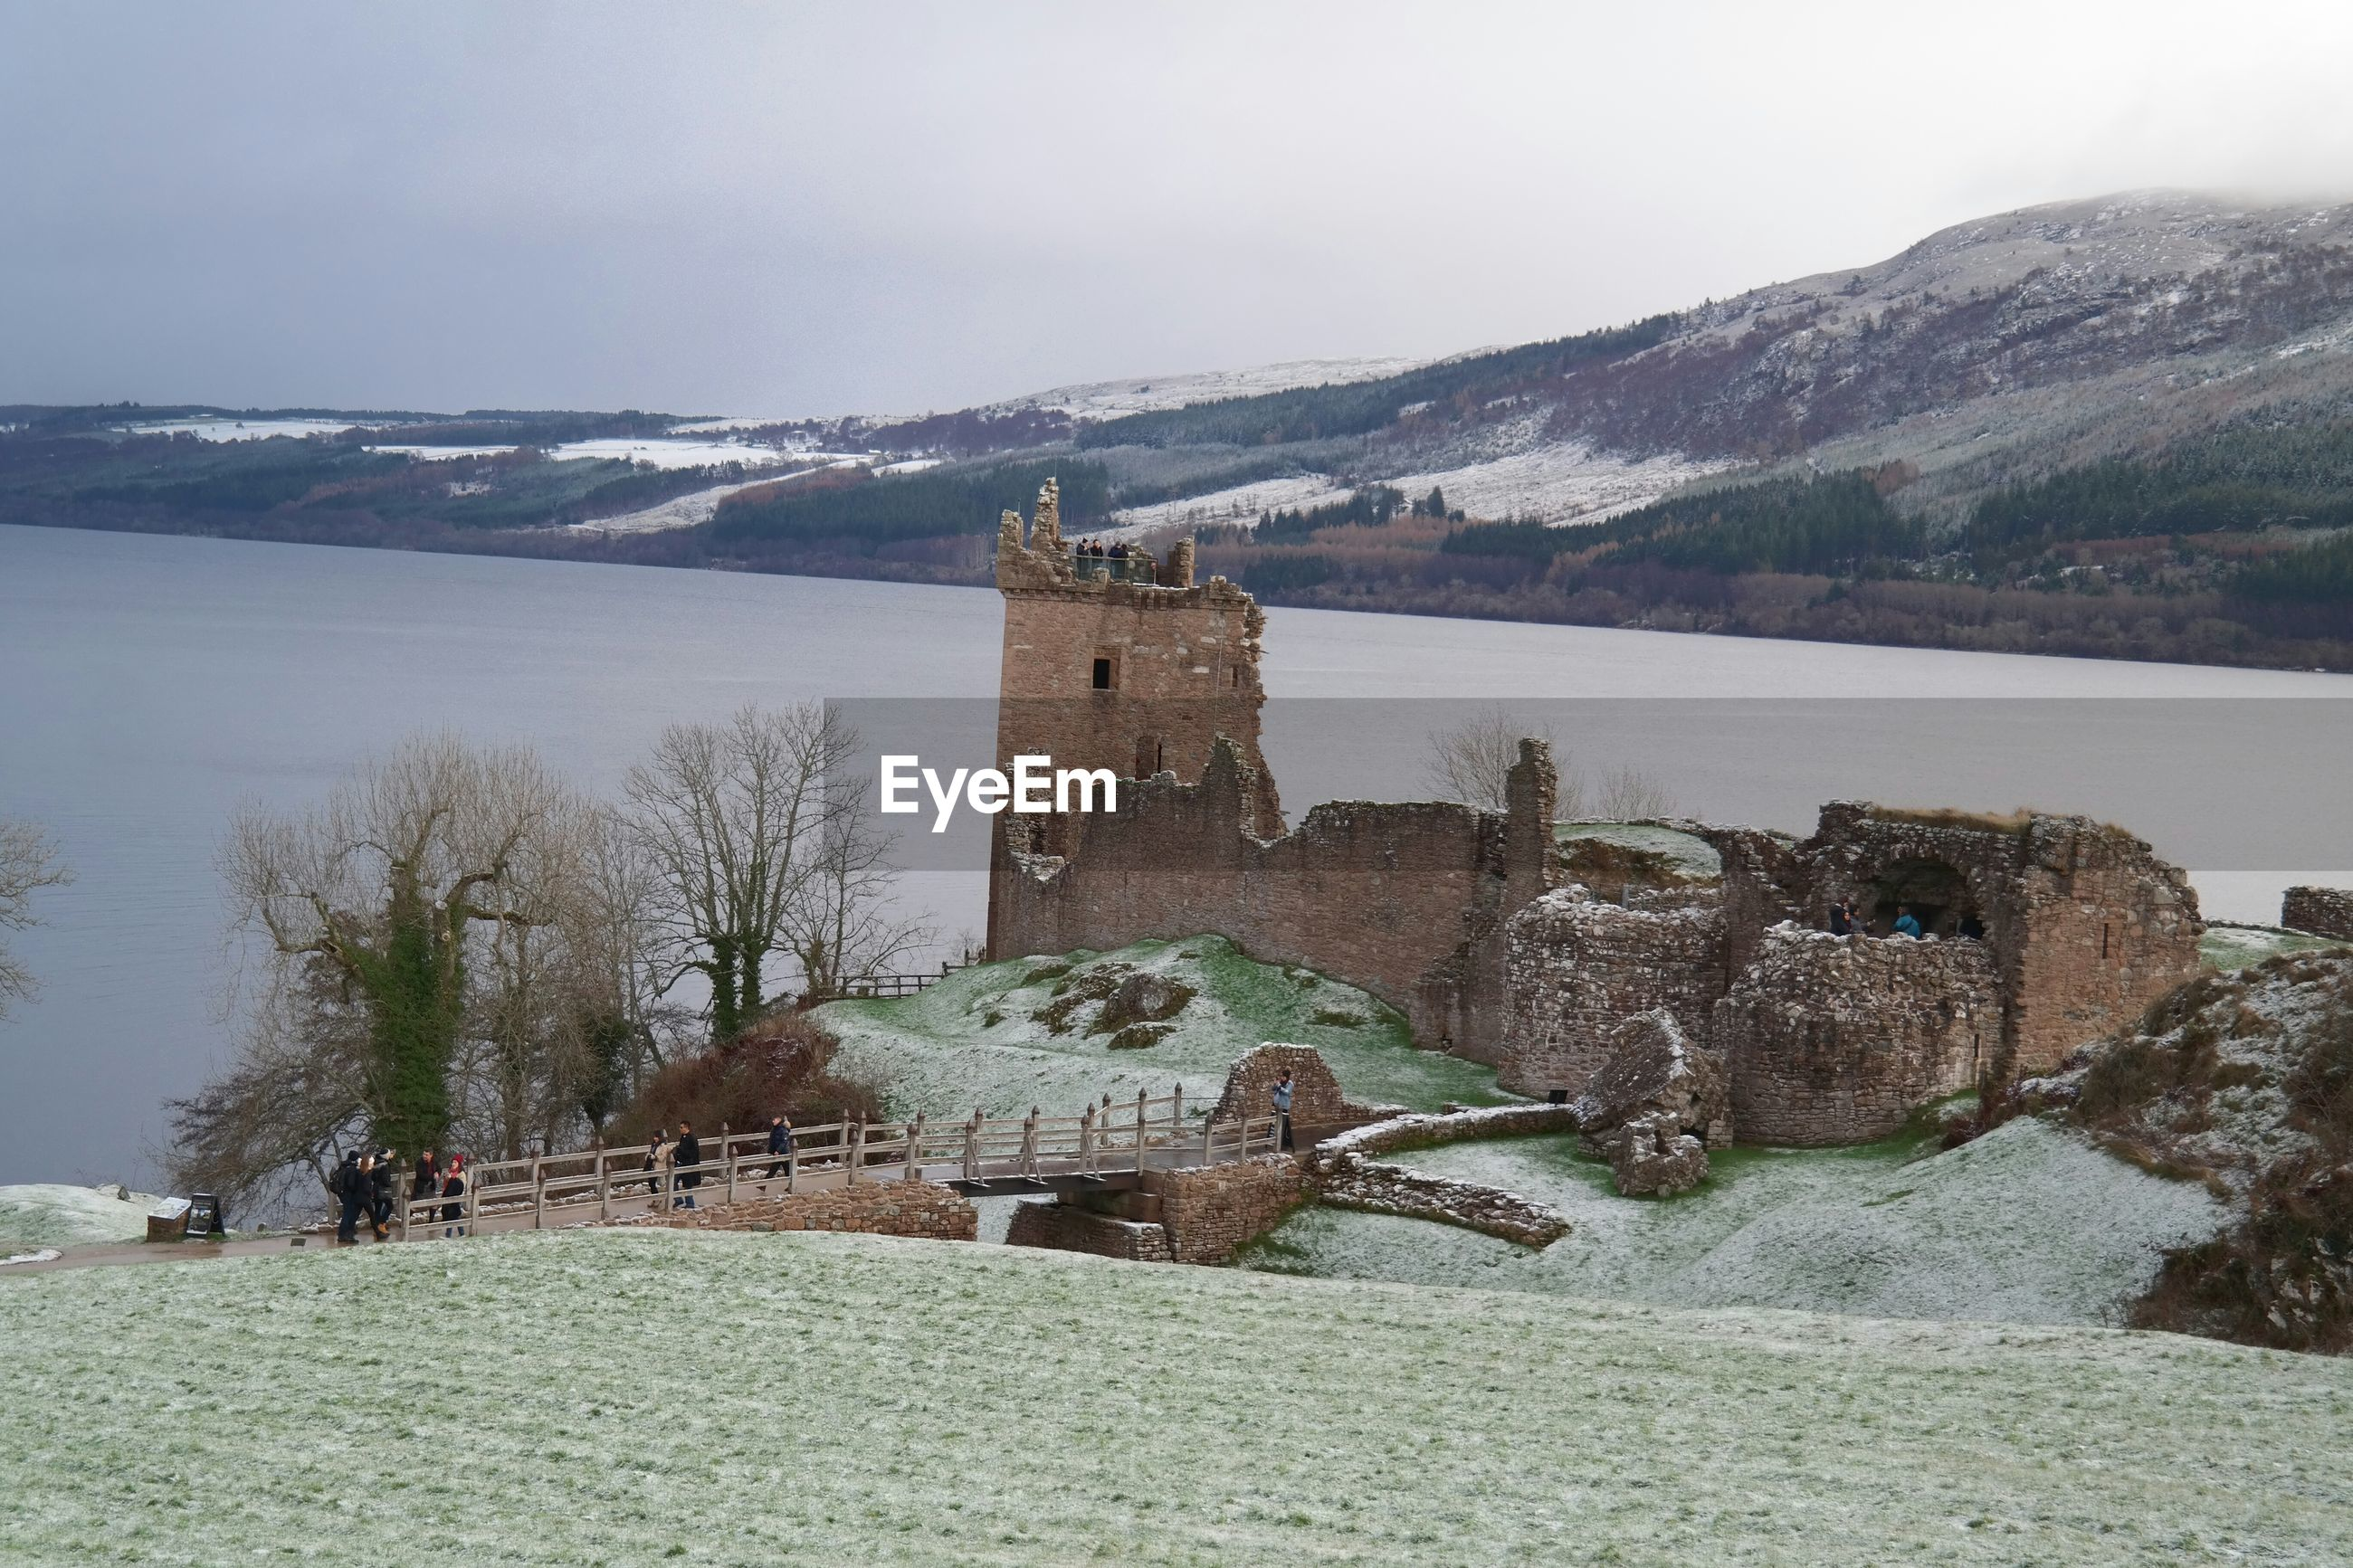 VIEW OF FORT AGAINST MOUNTAIN